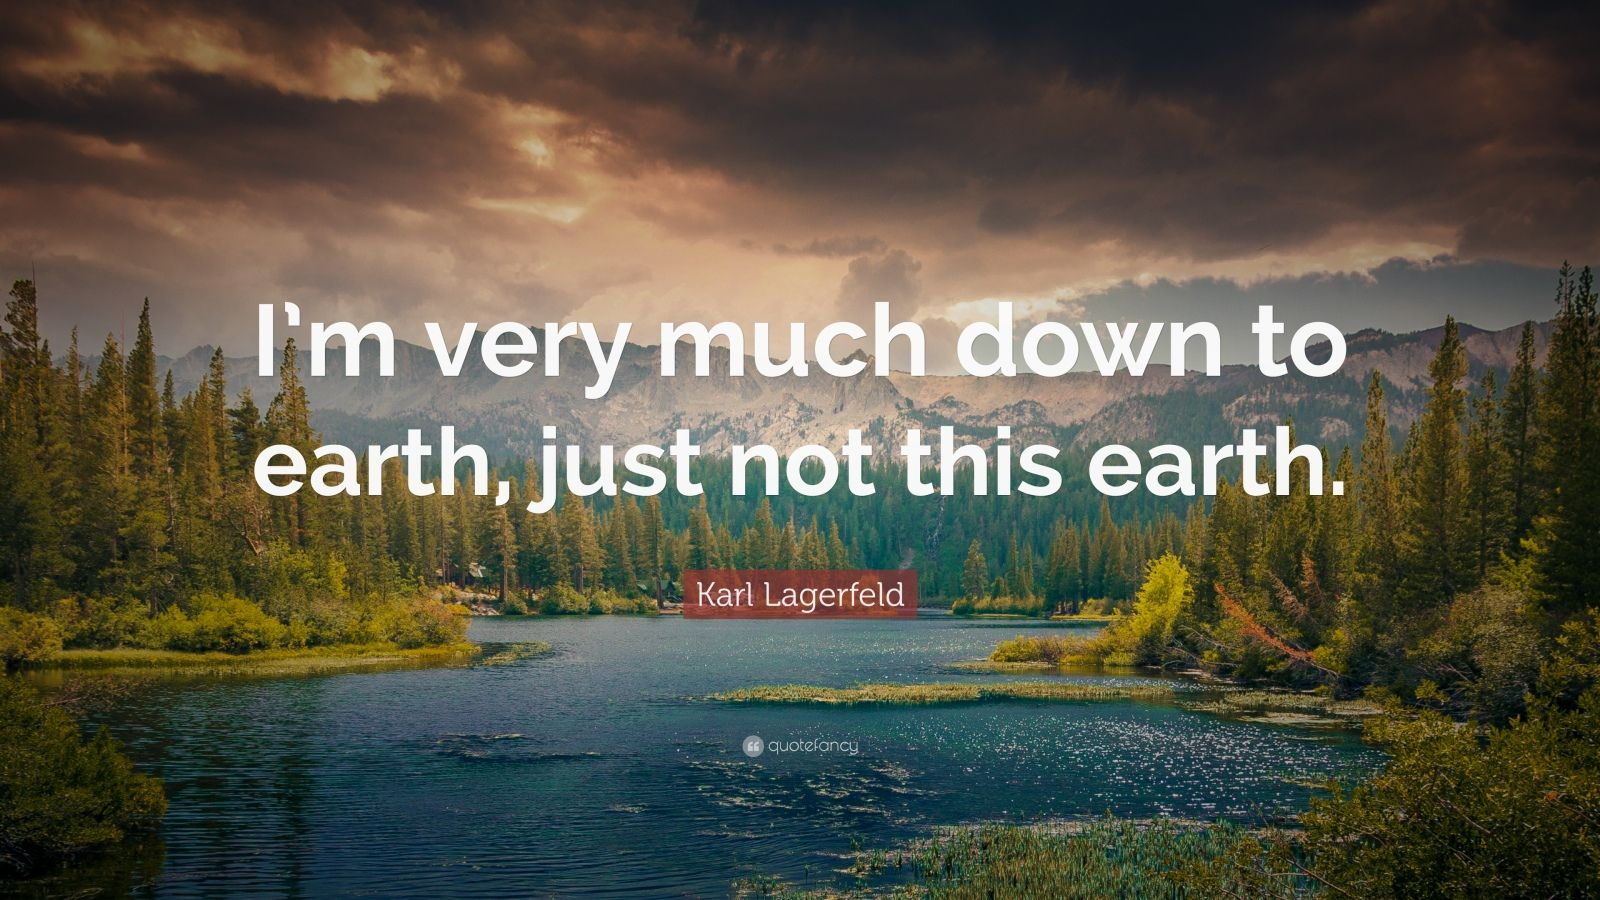 """Karl Lagerfeld Quote: """"I'm very much down to earth, just not this earth."""""""